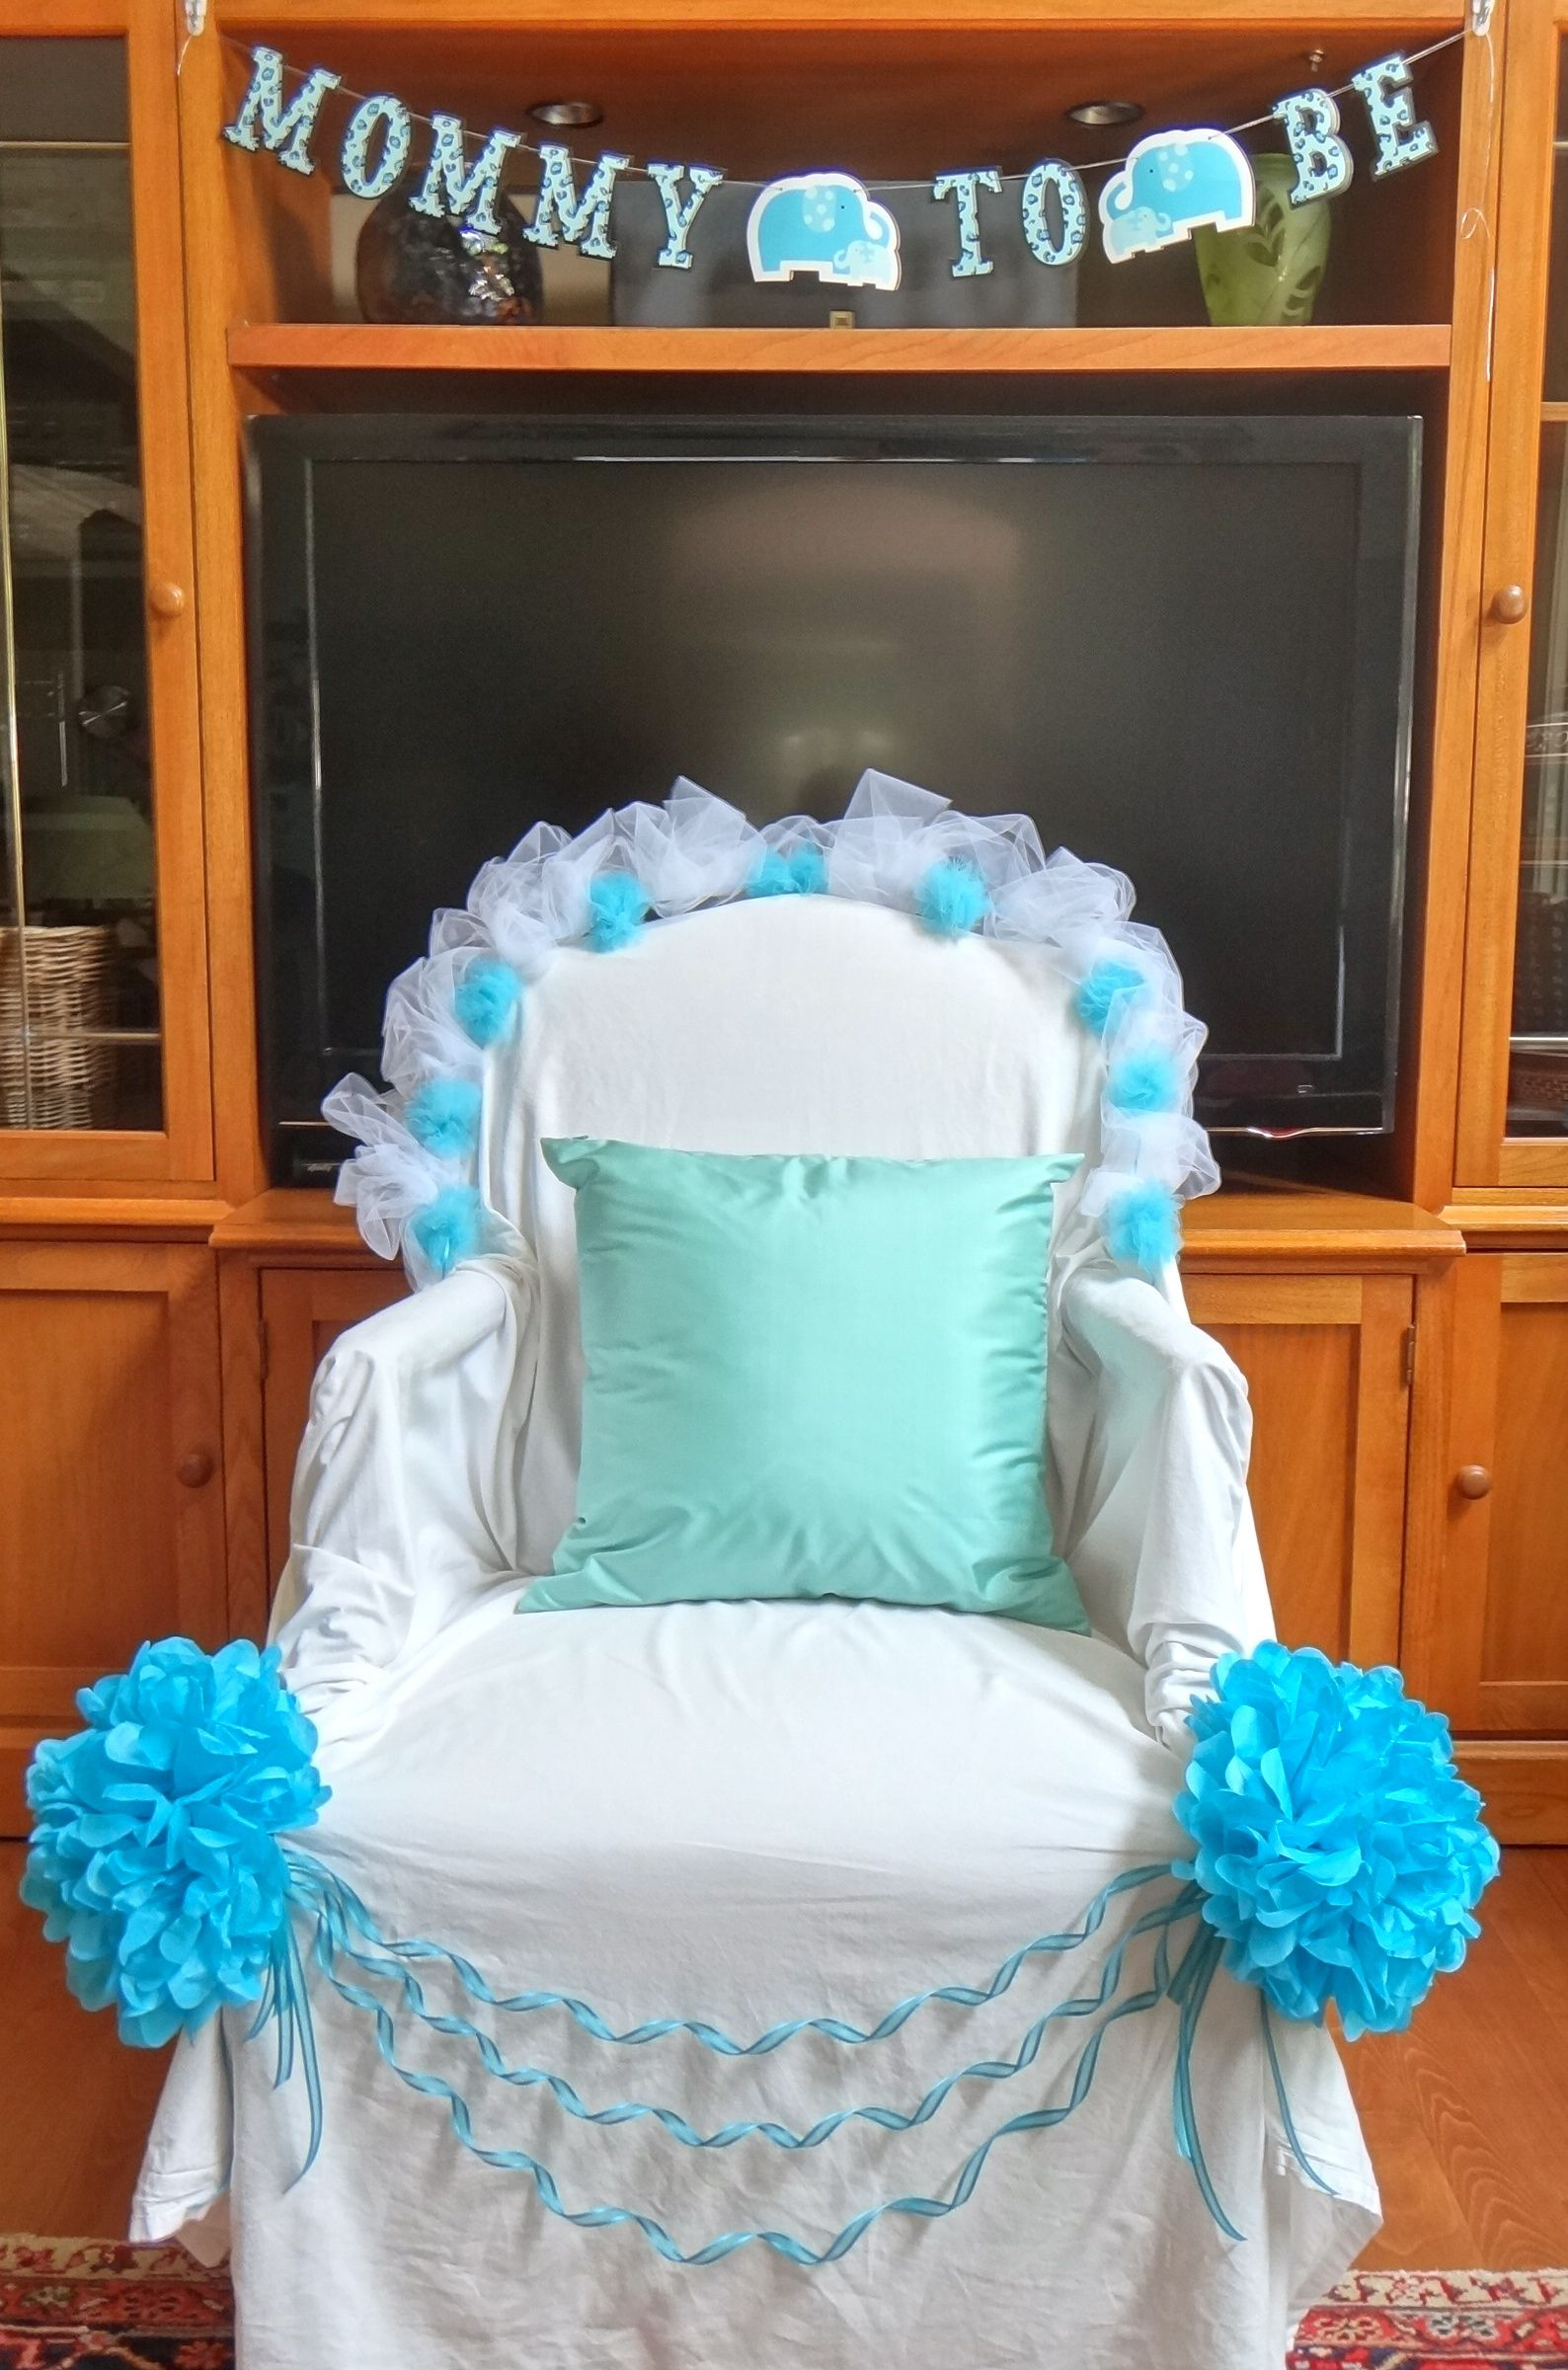 Baby Shower Chair Mom To Be Thrown Chair Draped With A White Bed Sheet And